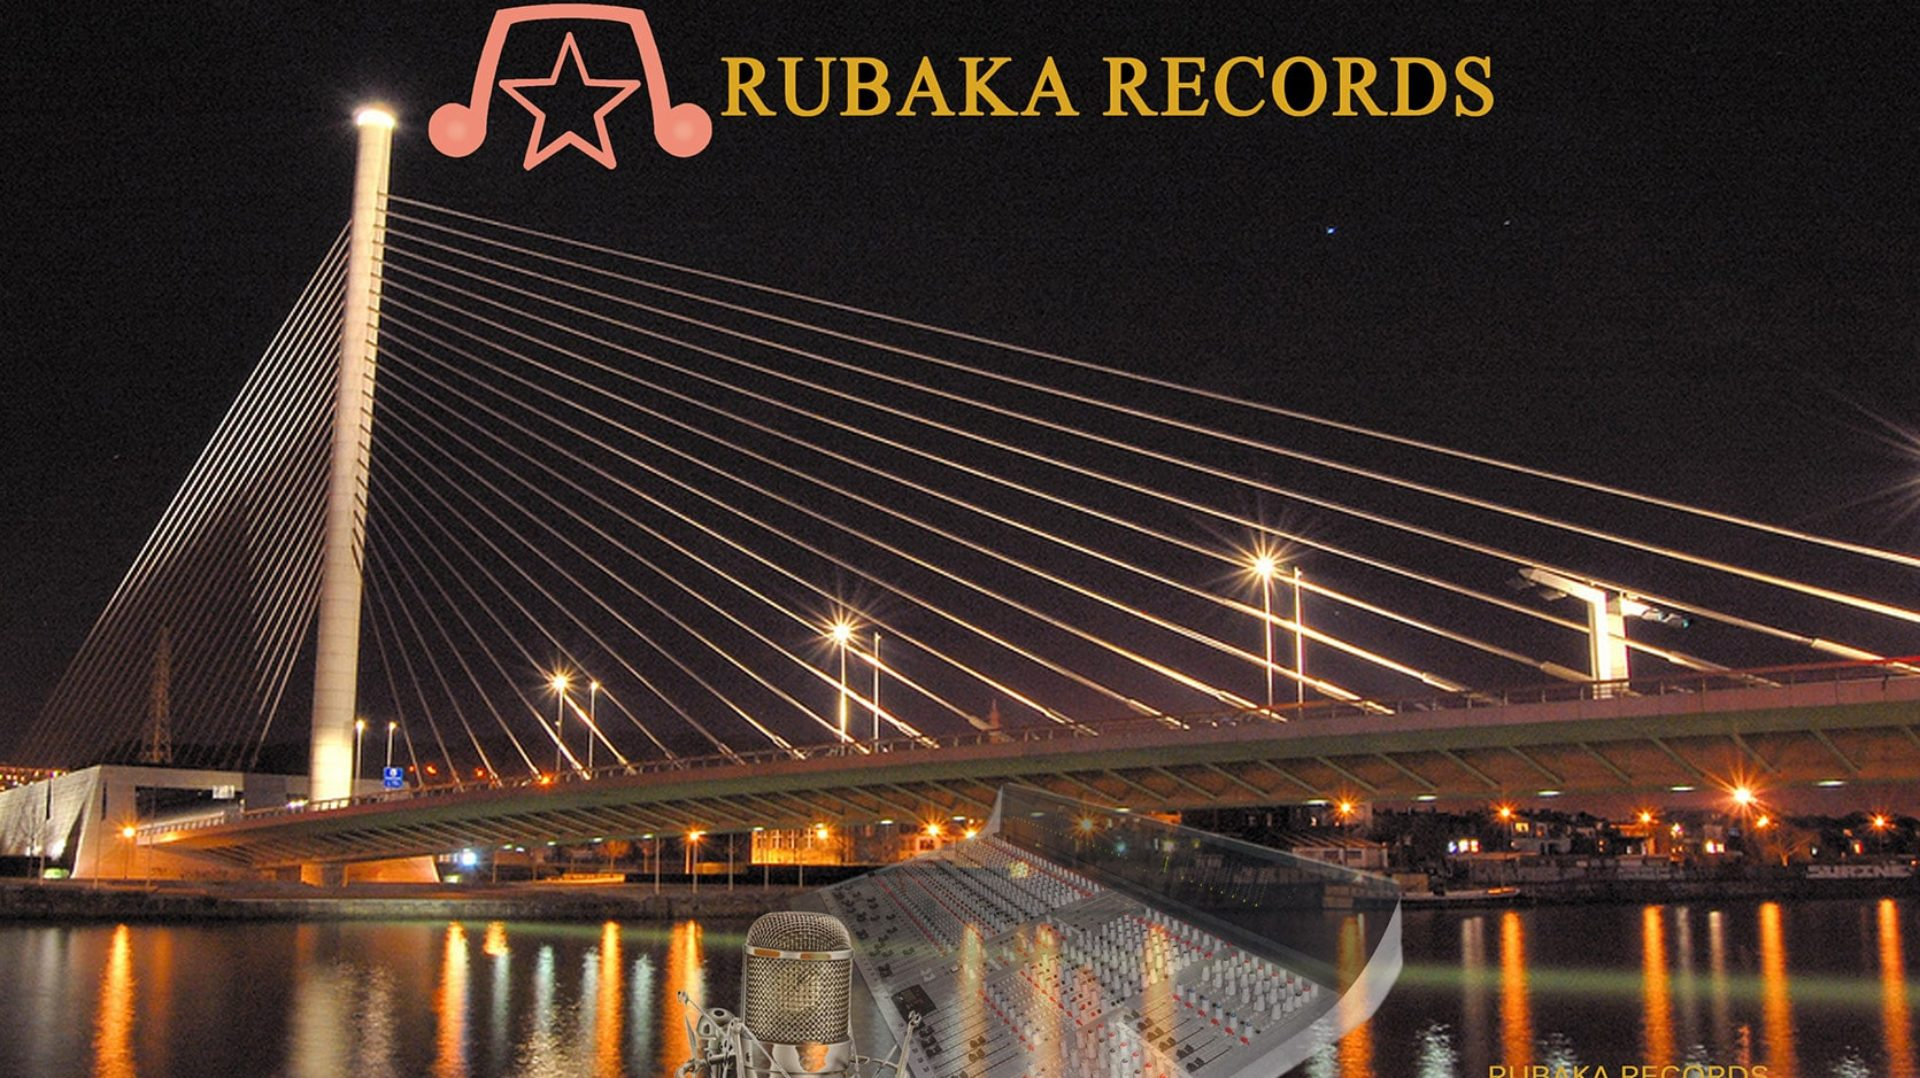 RUBAKA RECORDS